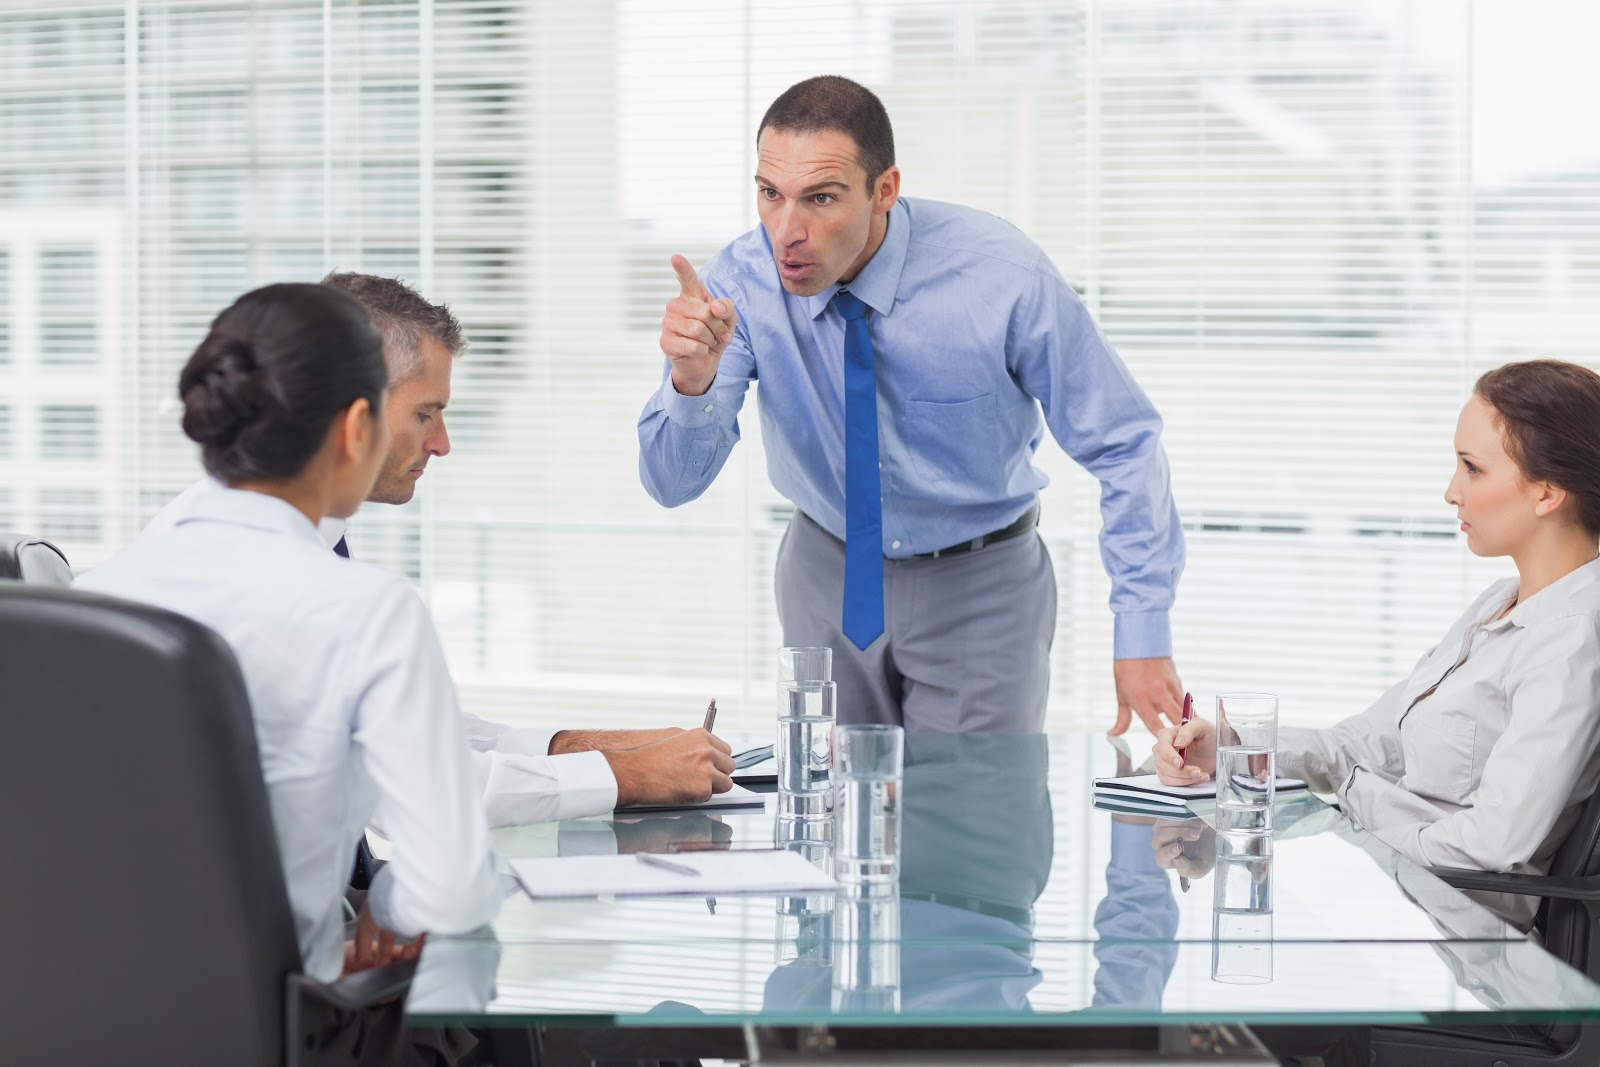 A man standing up in an office meeting pointing and yelling at coworkers